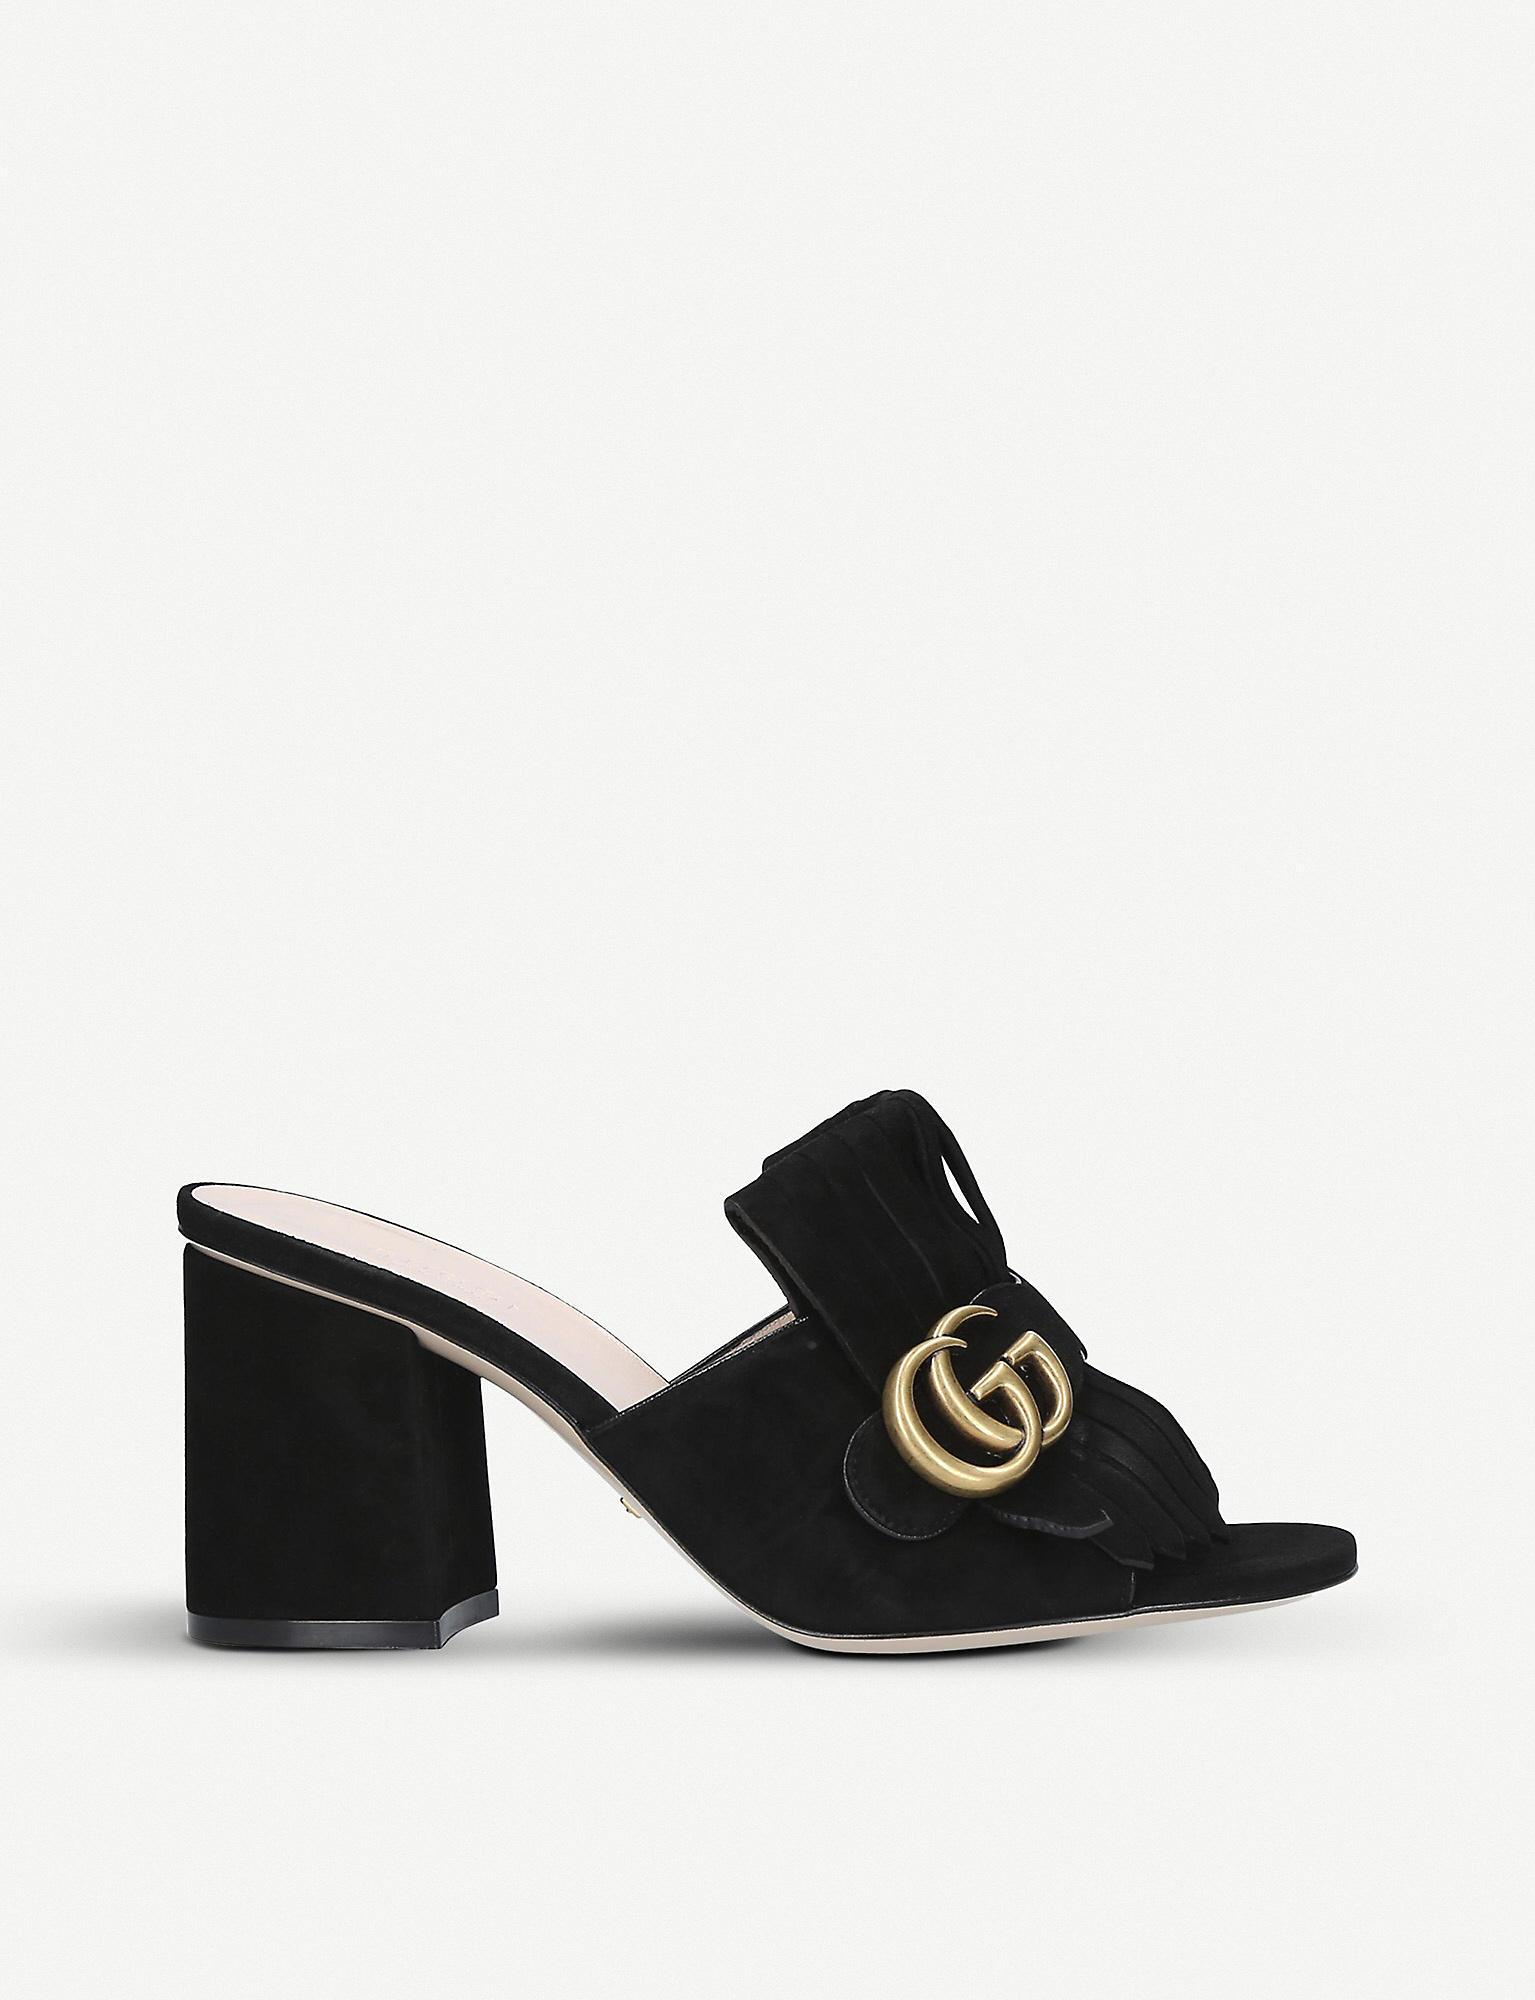 1cce2221e35 Lyst - Gucci Marmont 75 Suede Mules in Black - Save 25%